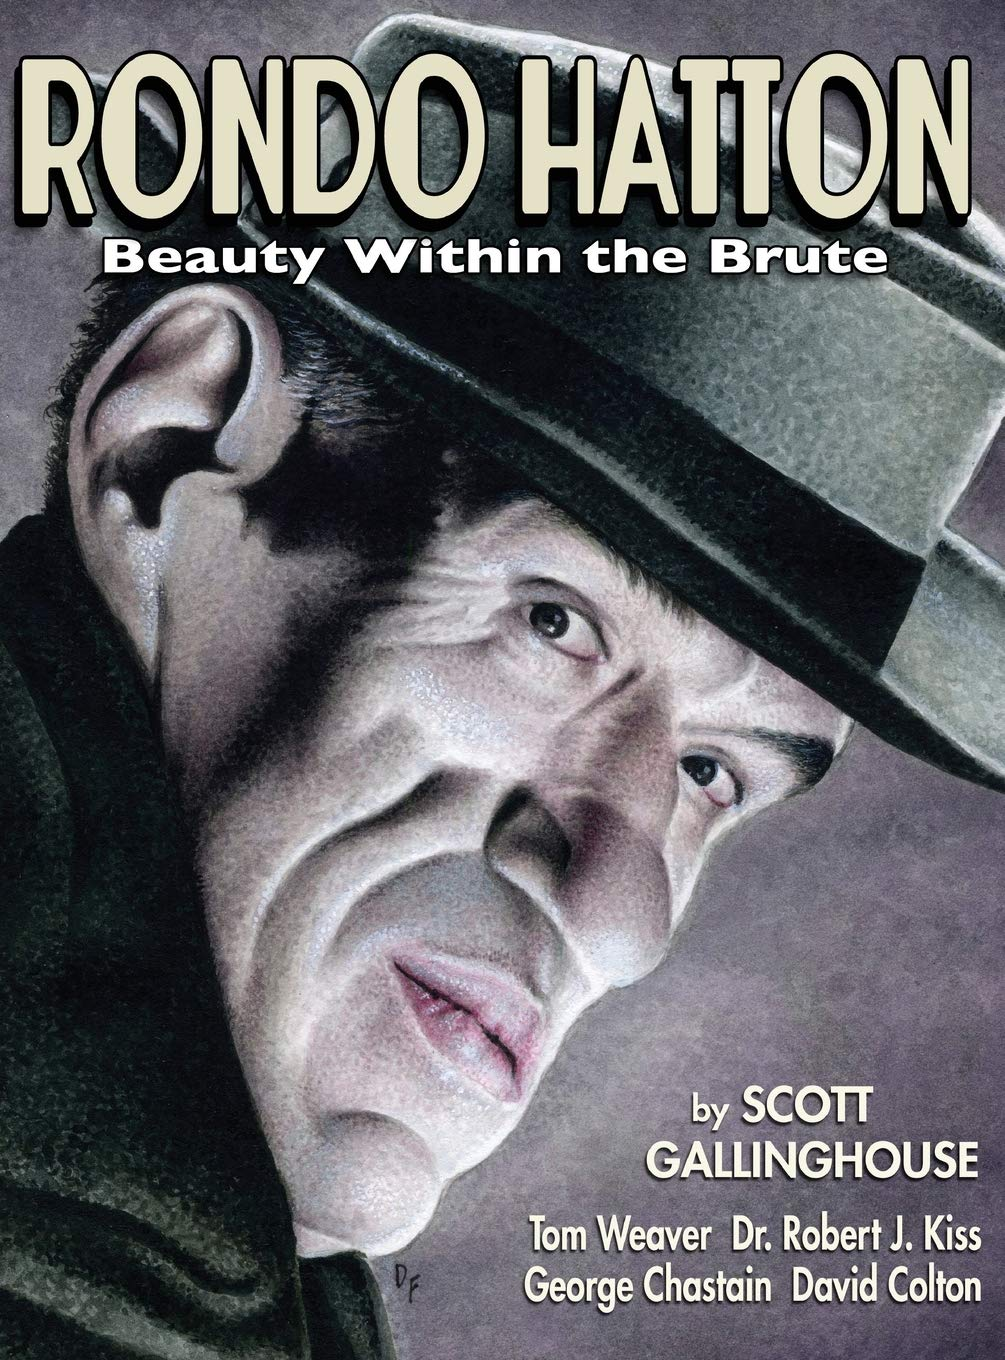 The Brute Man Scripts from the Crypt